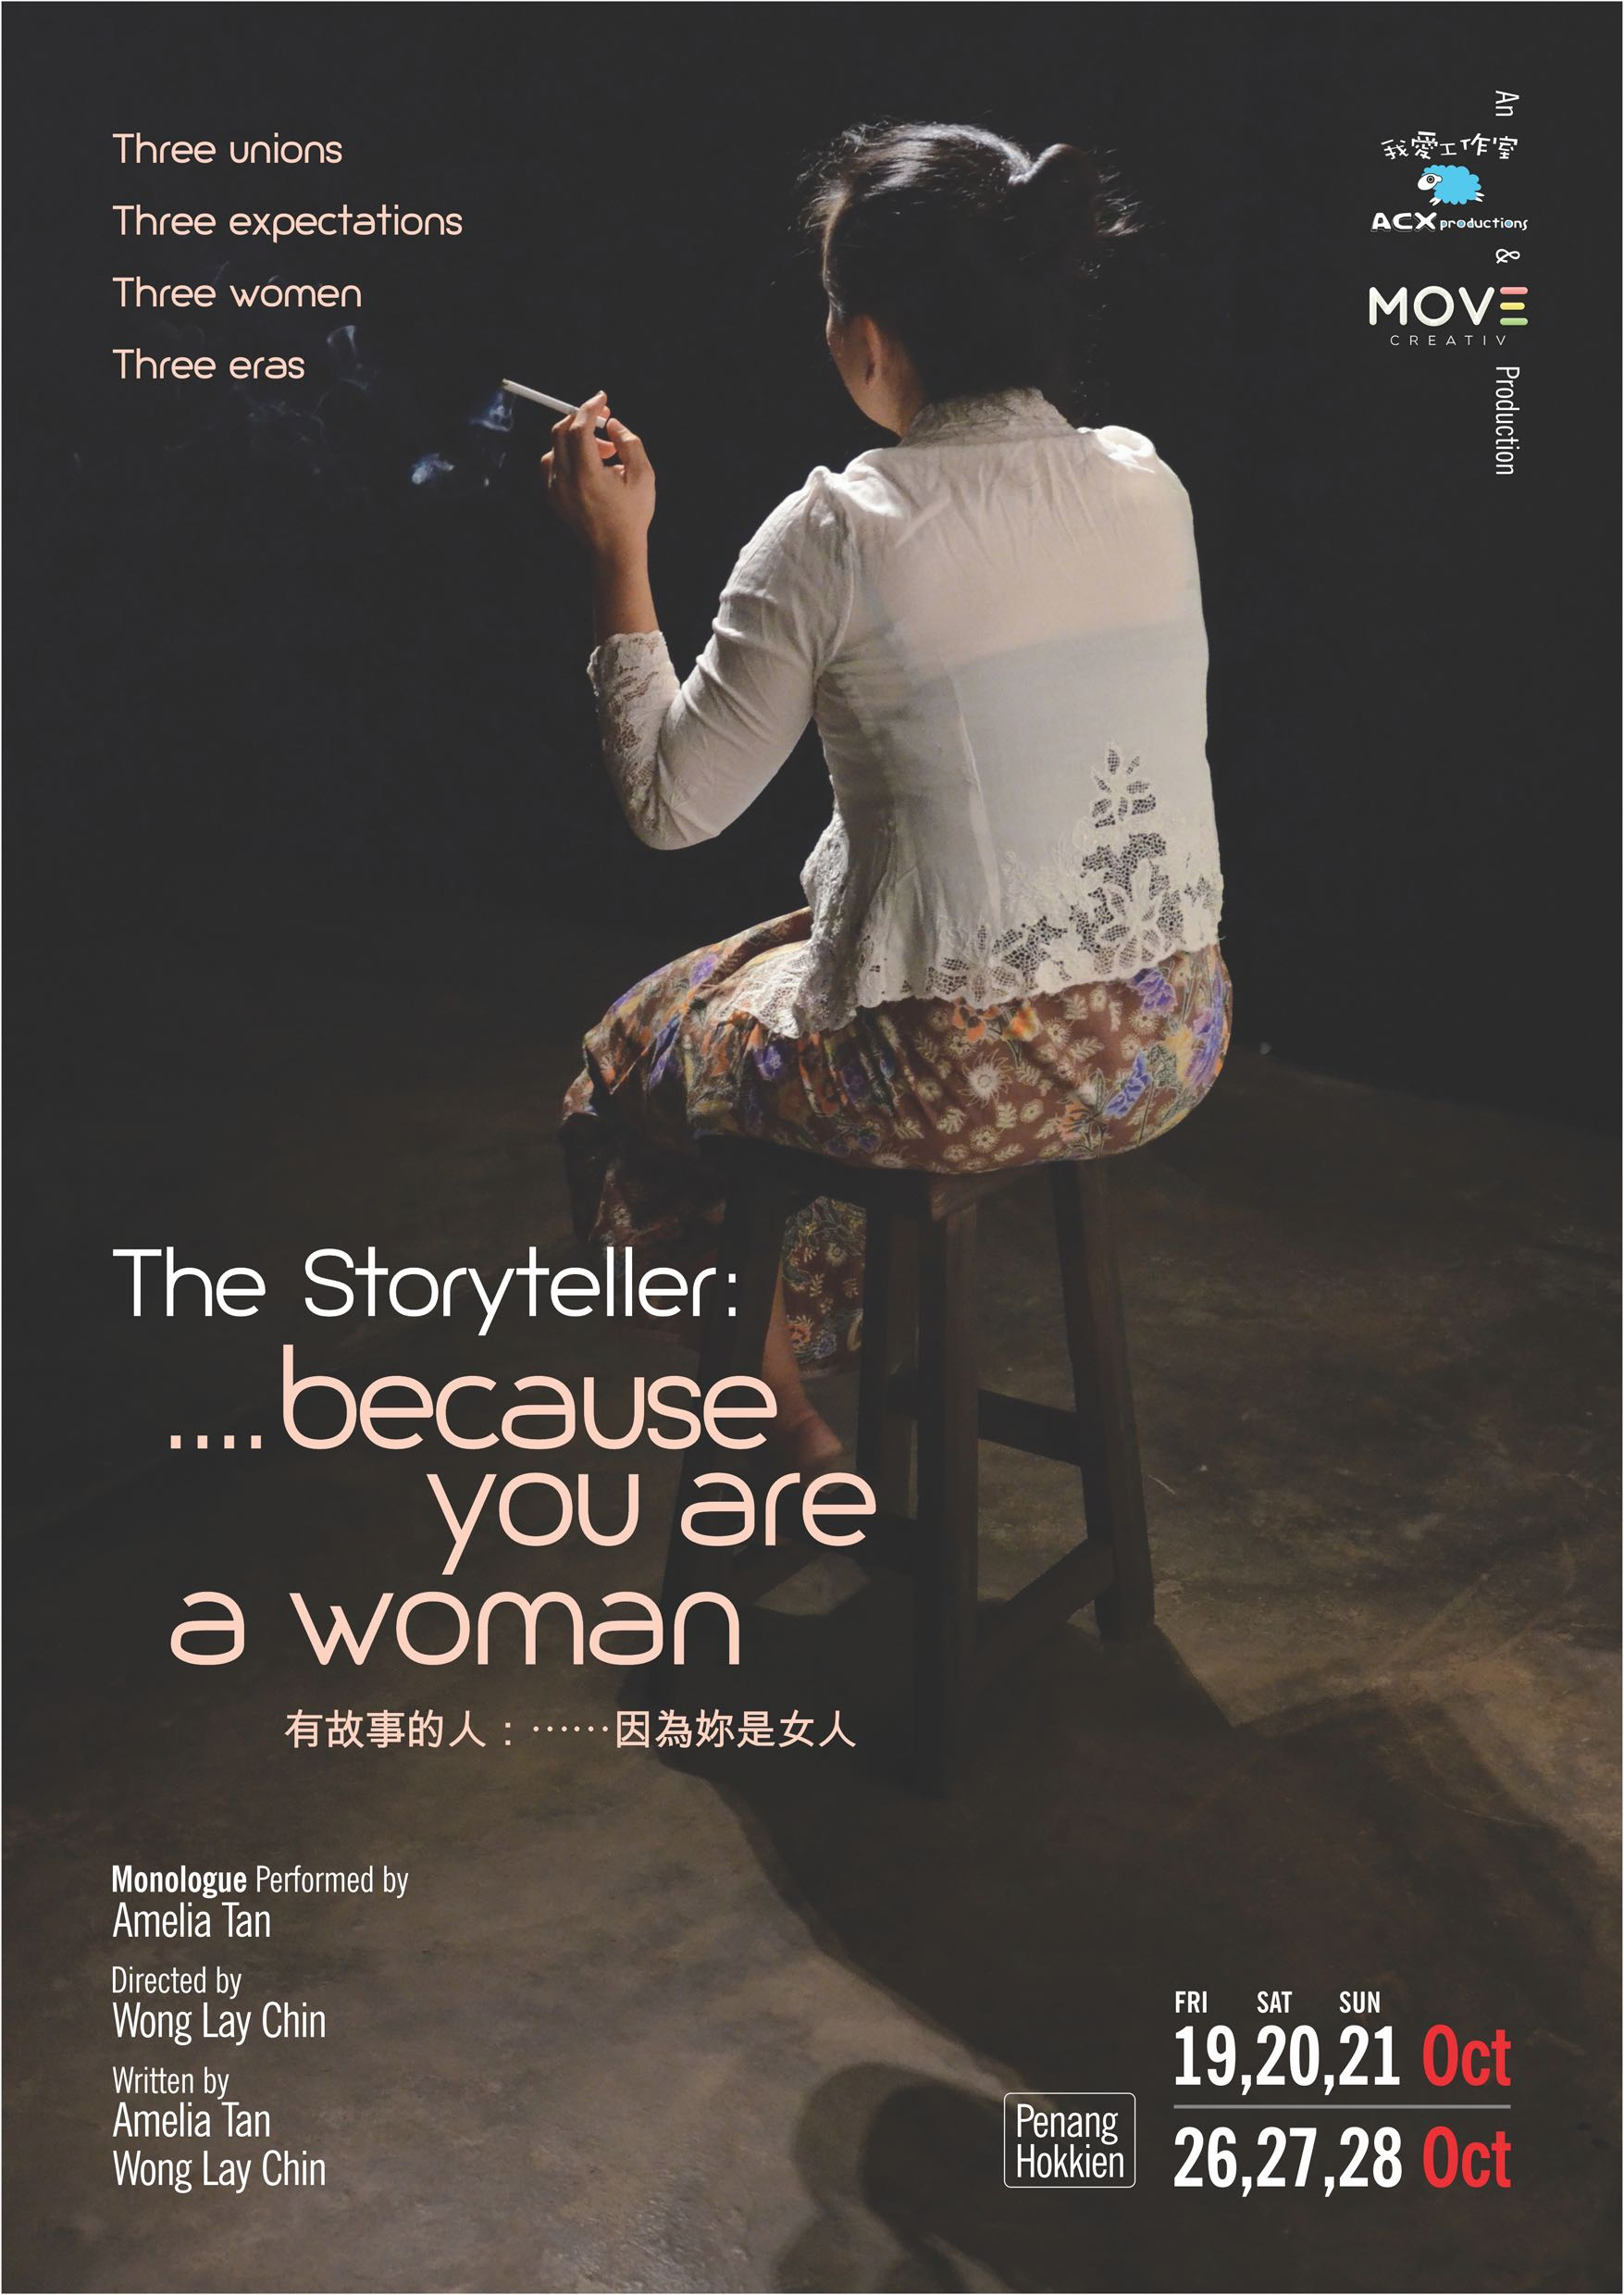 2018 The Storyteller Because You Are A Woman Poster KL